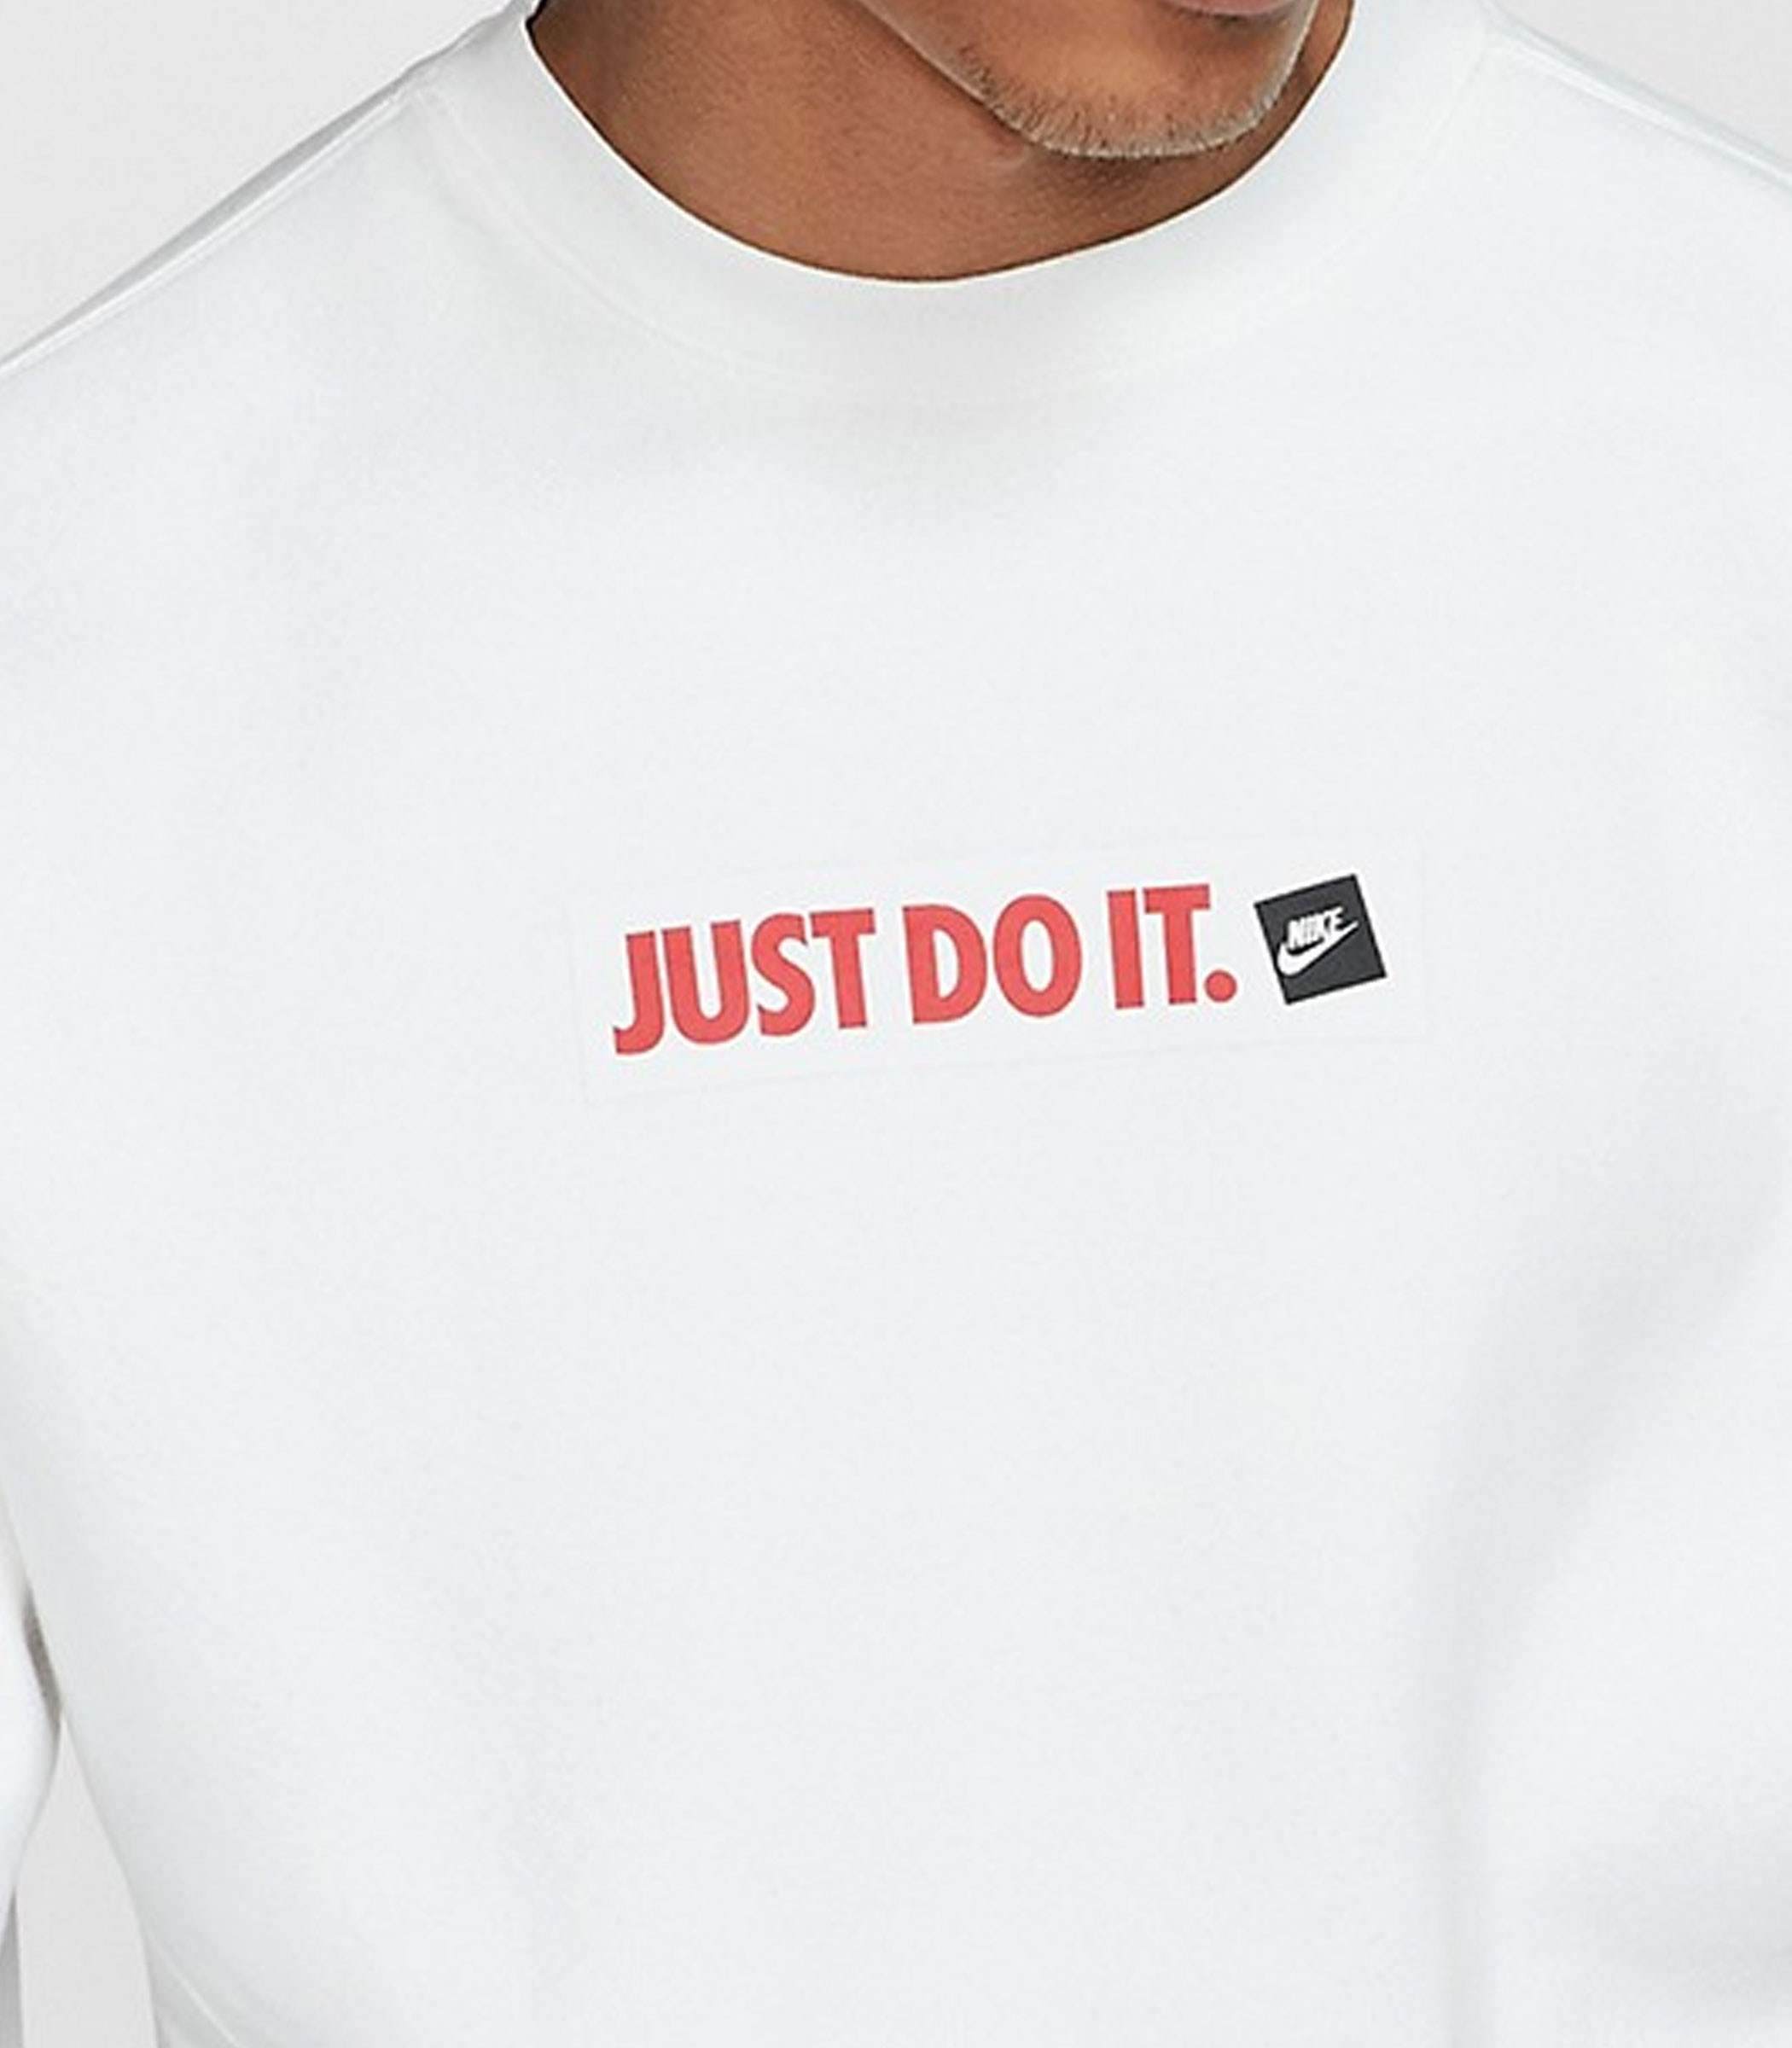 Felpa Nike Sportswear girocollo con stampa Just Do It uomo